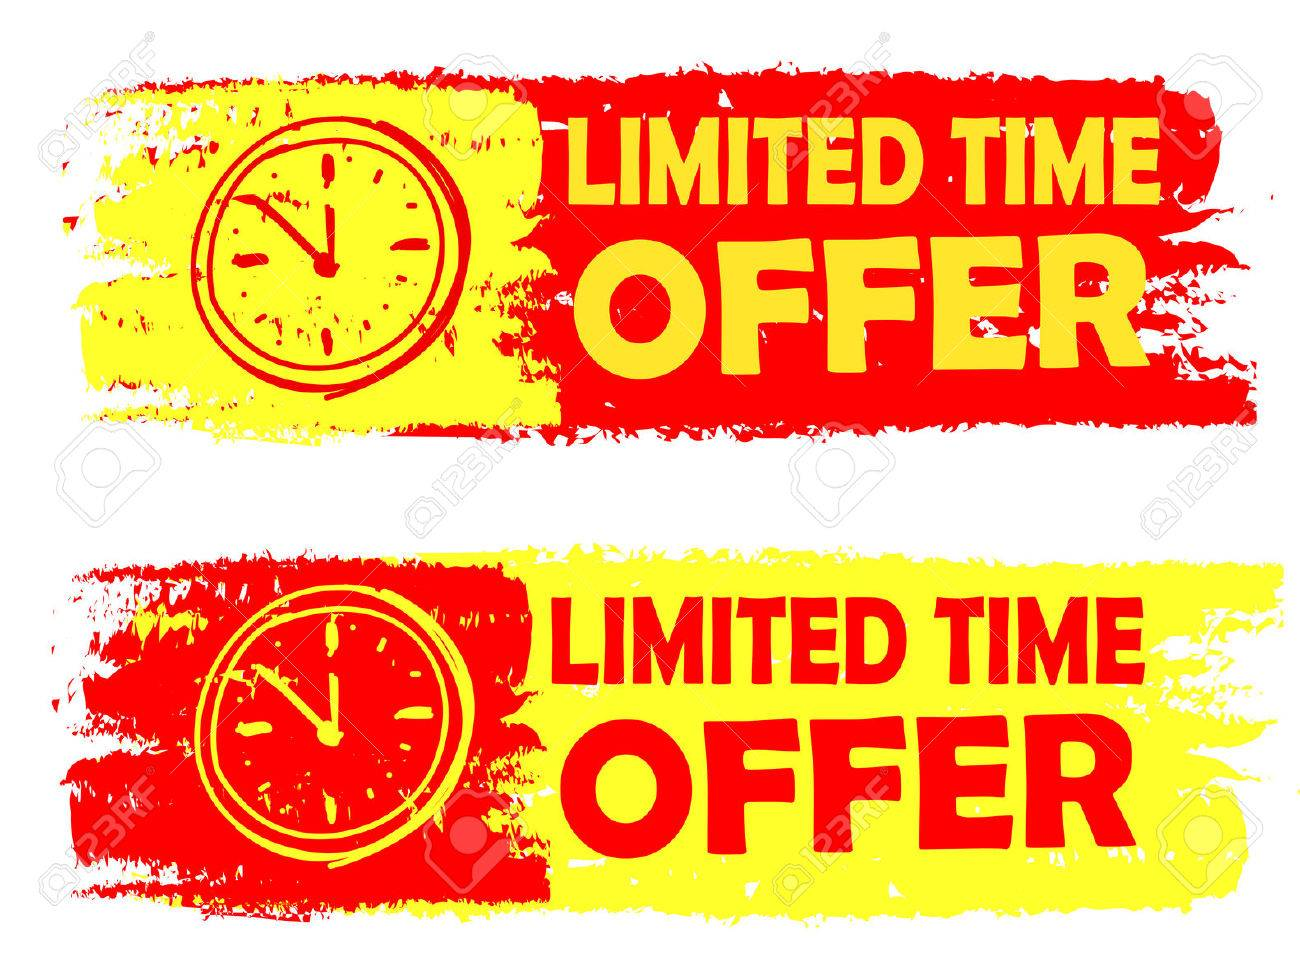 Limited Time Offer With Clock Signs Banners Text In Yellow Stock